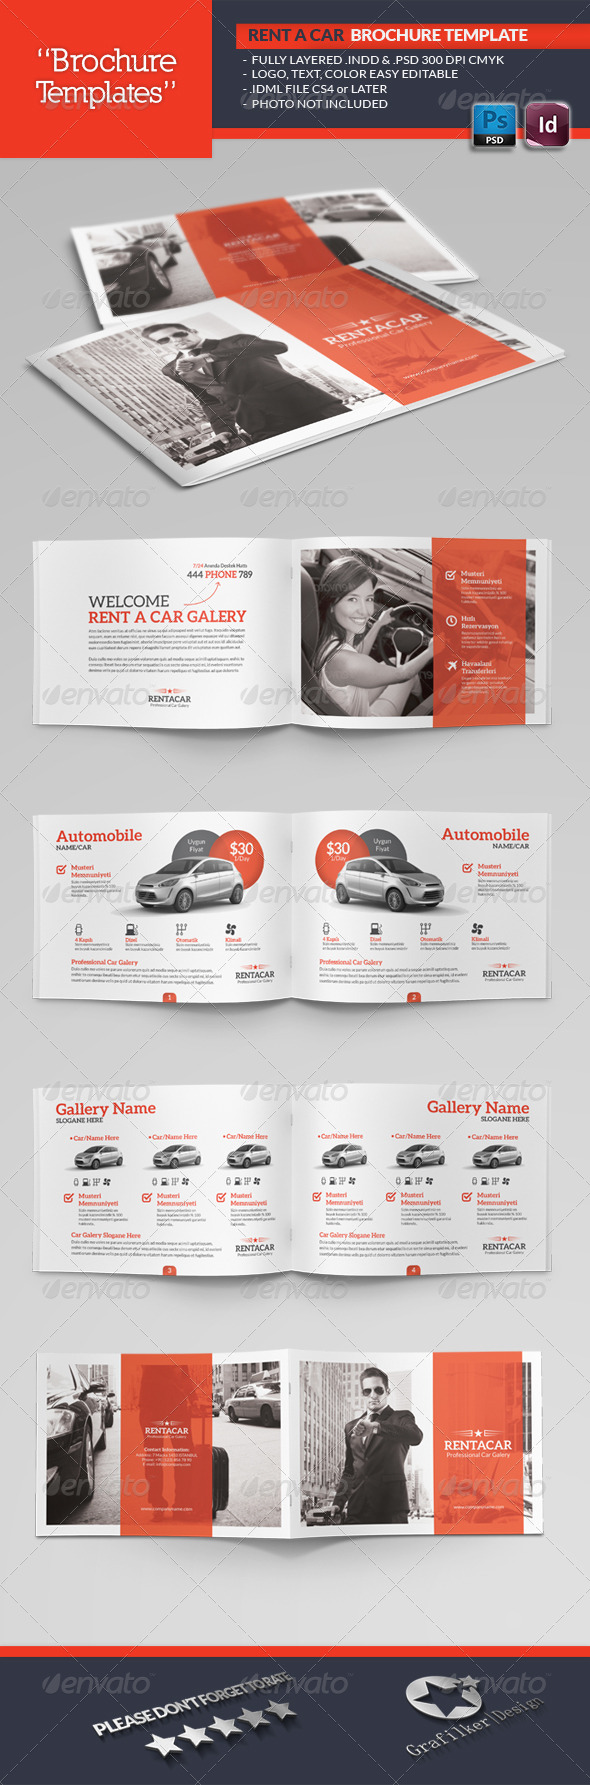 GraphicRiver Rent A Car Brochure Template 5510431